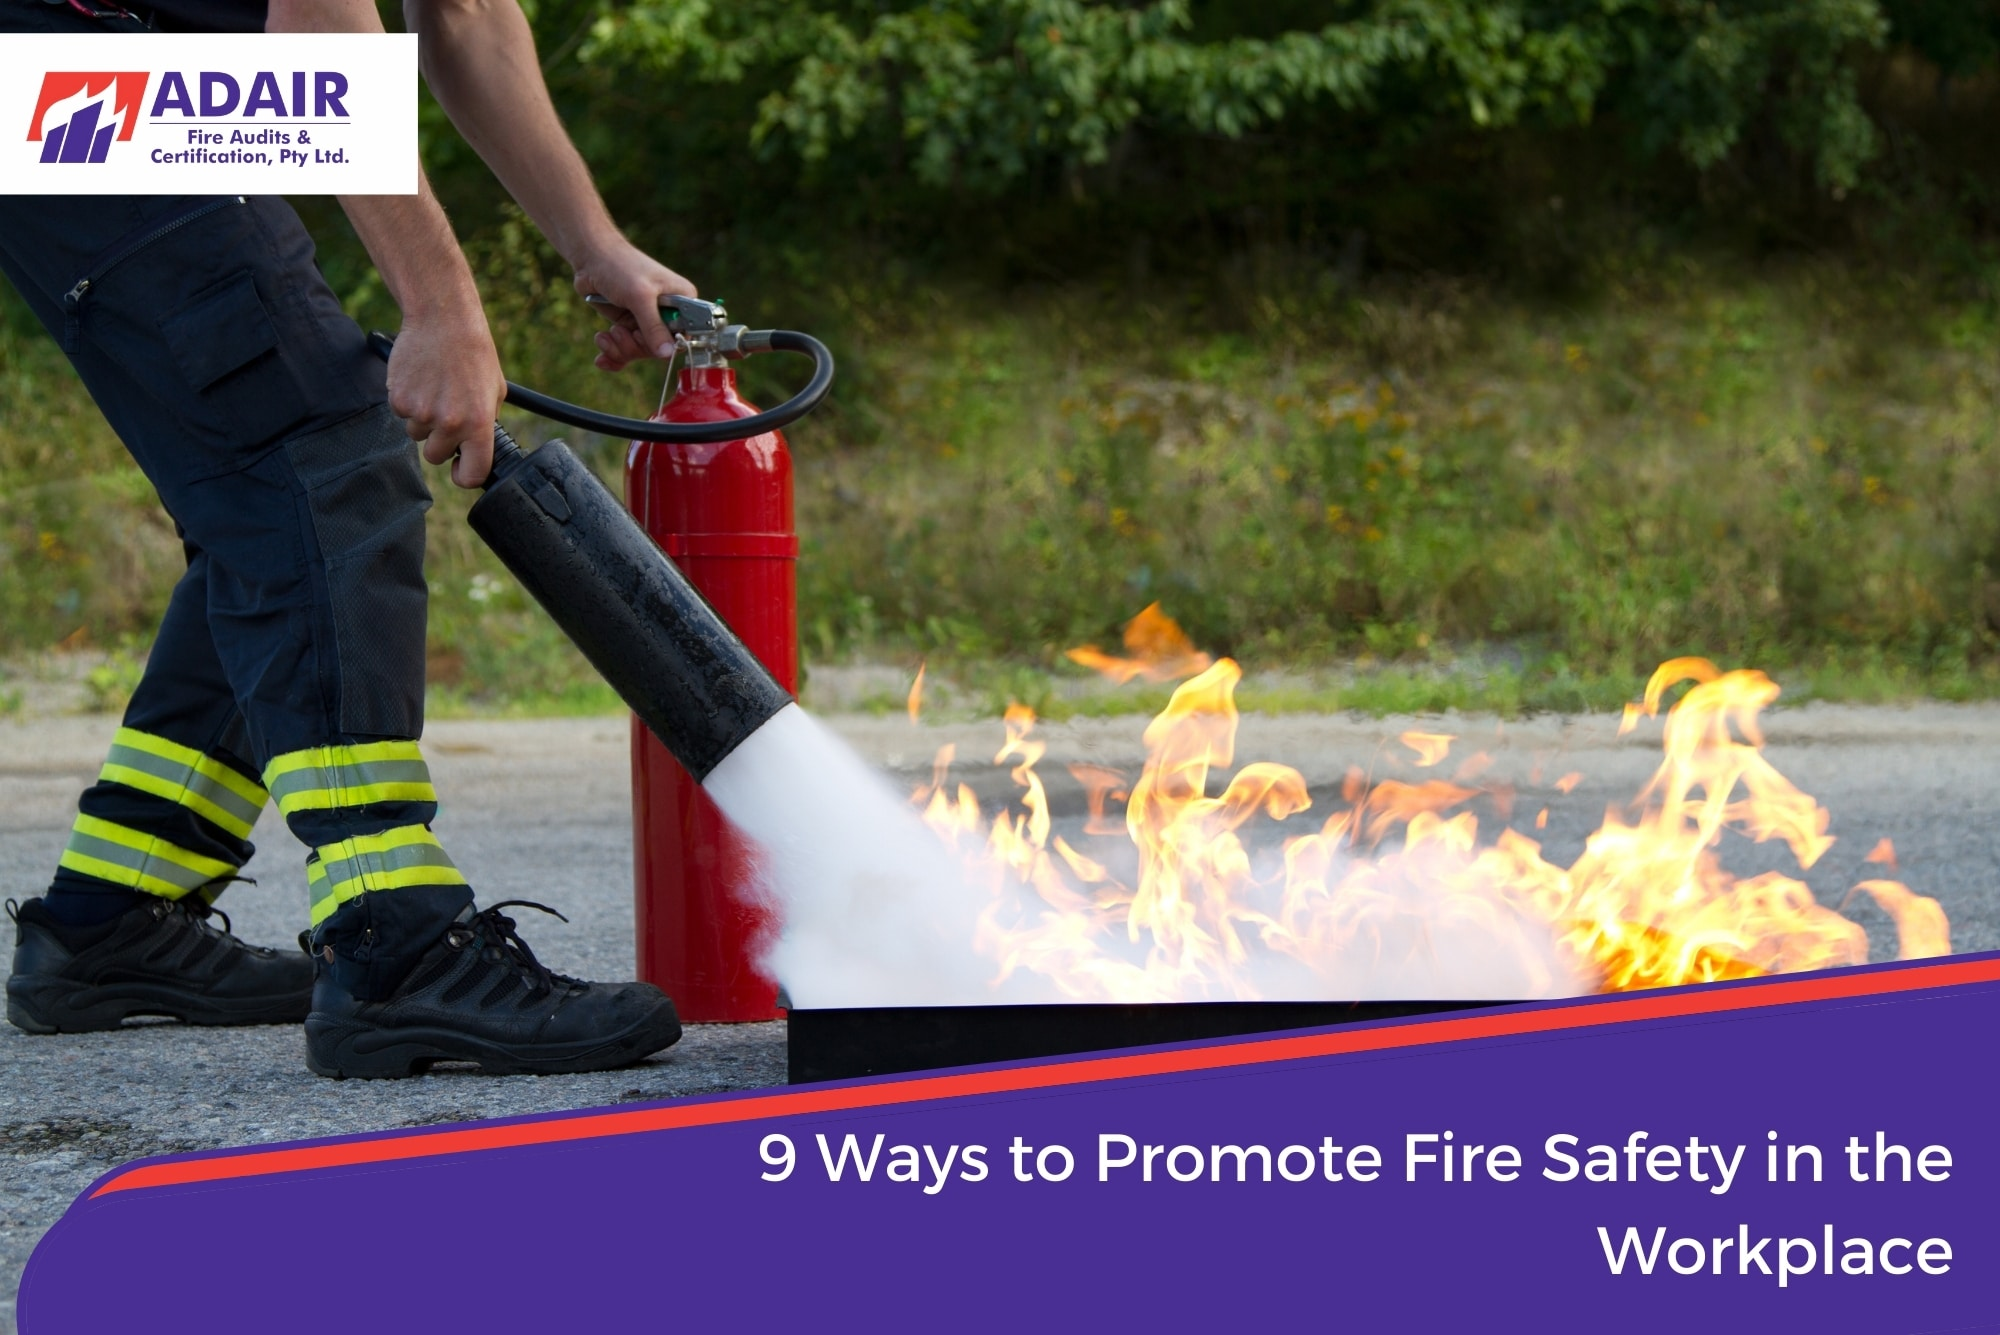 9 Ways to Promote Fire Safety in the Workplace